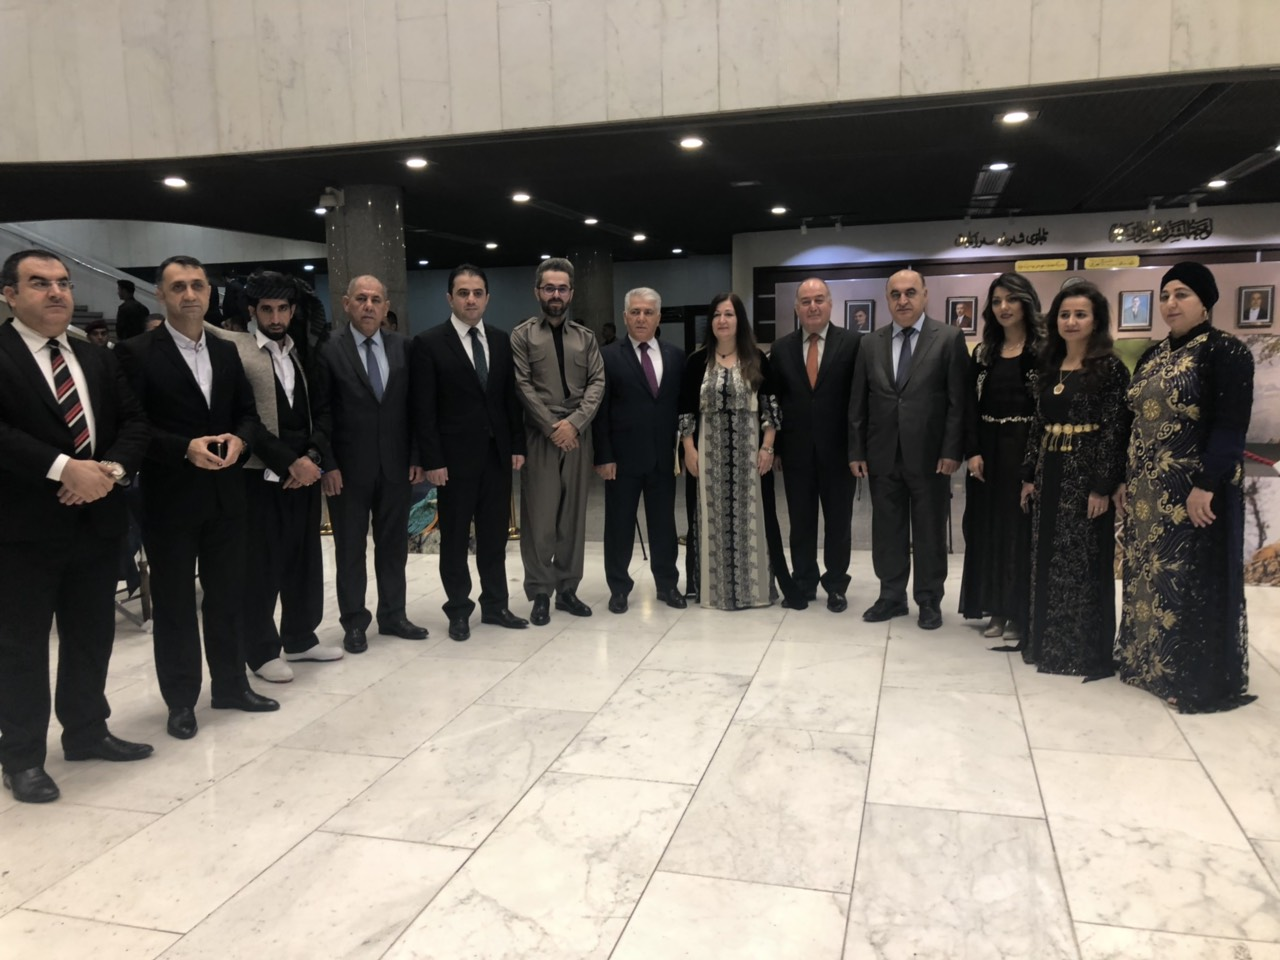 in  recognition of soran university several PHOTOGRAPHS of the nature of kurdistan are exhibited in the iraqi parliament